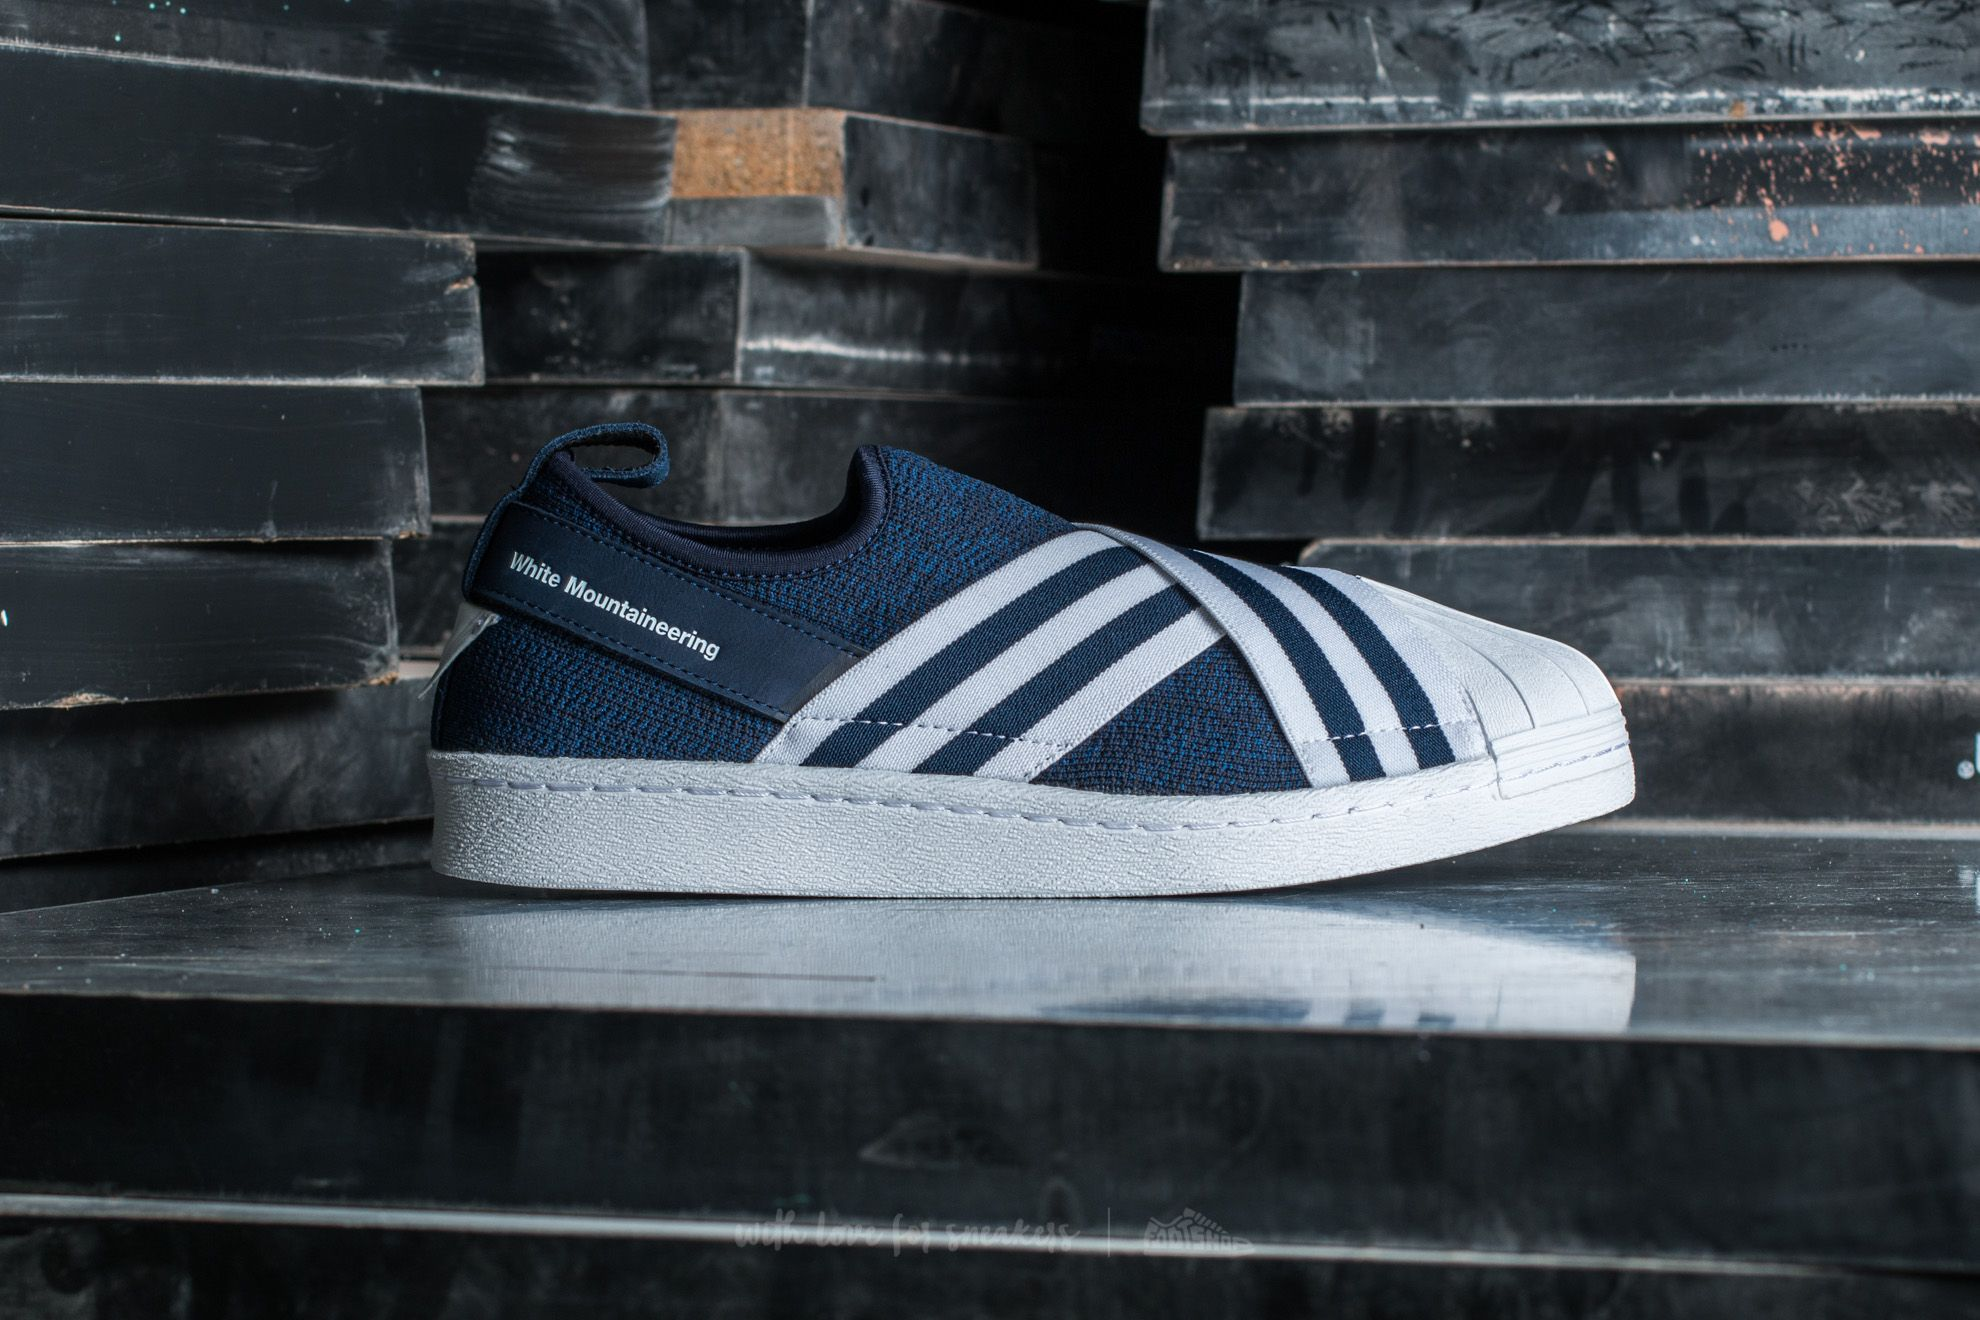 45c7d47aa34d adidas White Mountaineering Superstar Slip On Primeknit Collegiate Navy  Footwear  White  Footwear White at